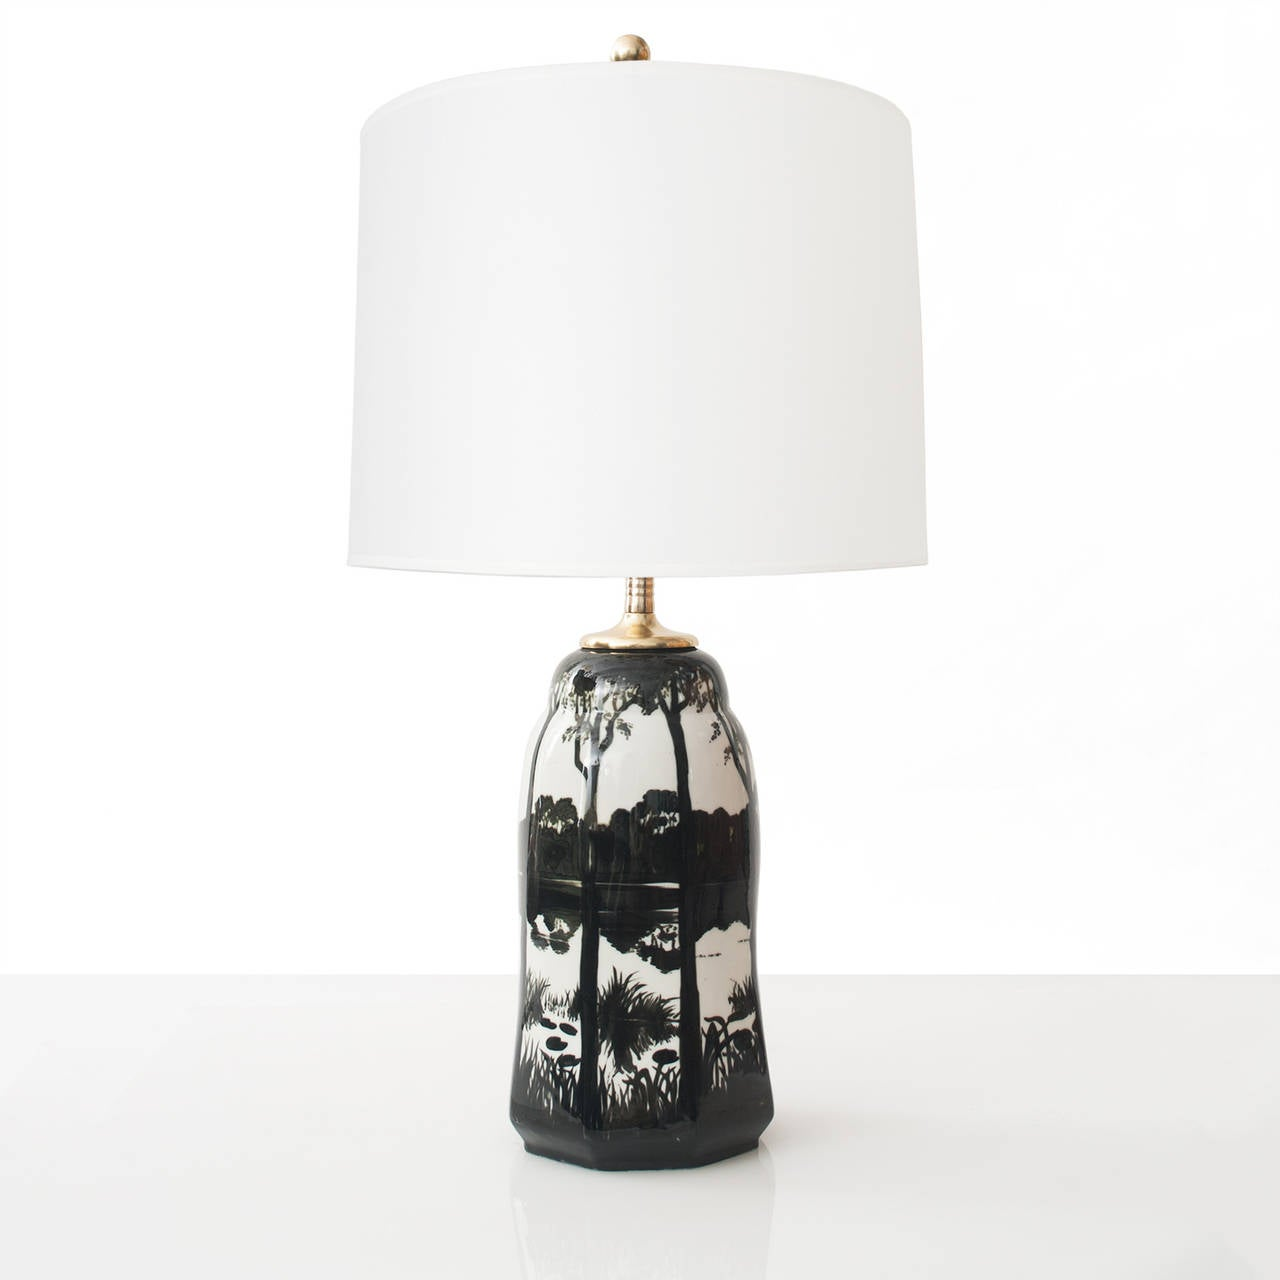 Swedish early 20th century glazed ceramic table lamp with a black and white lake scene over a hexagonal shaped form. Designed and signed by Knut Hallgren, marked ALP Lidkoping, 1918. Newly electrified with on standard socket for use in the USA, and